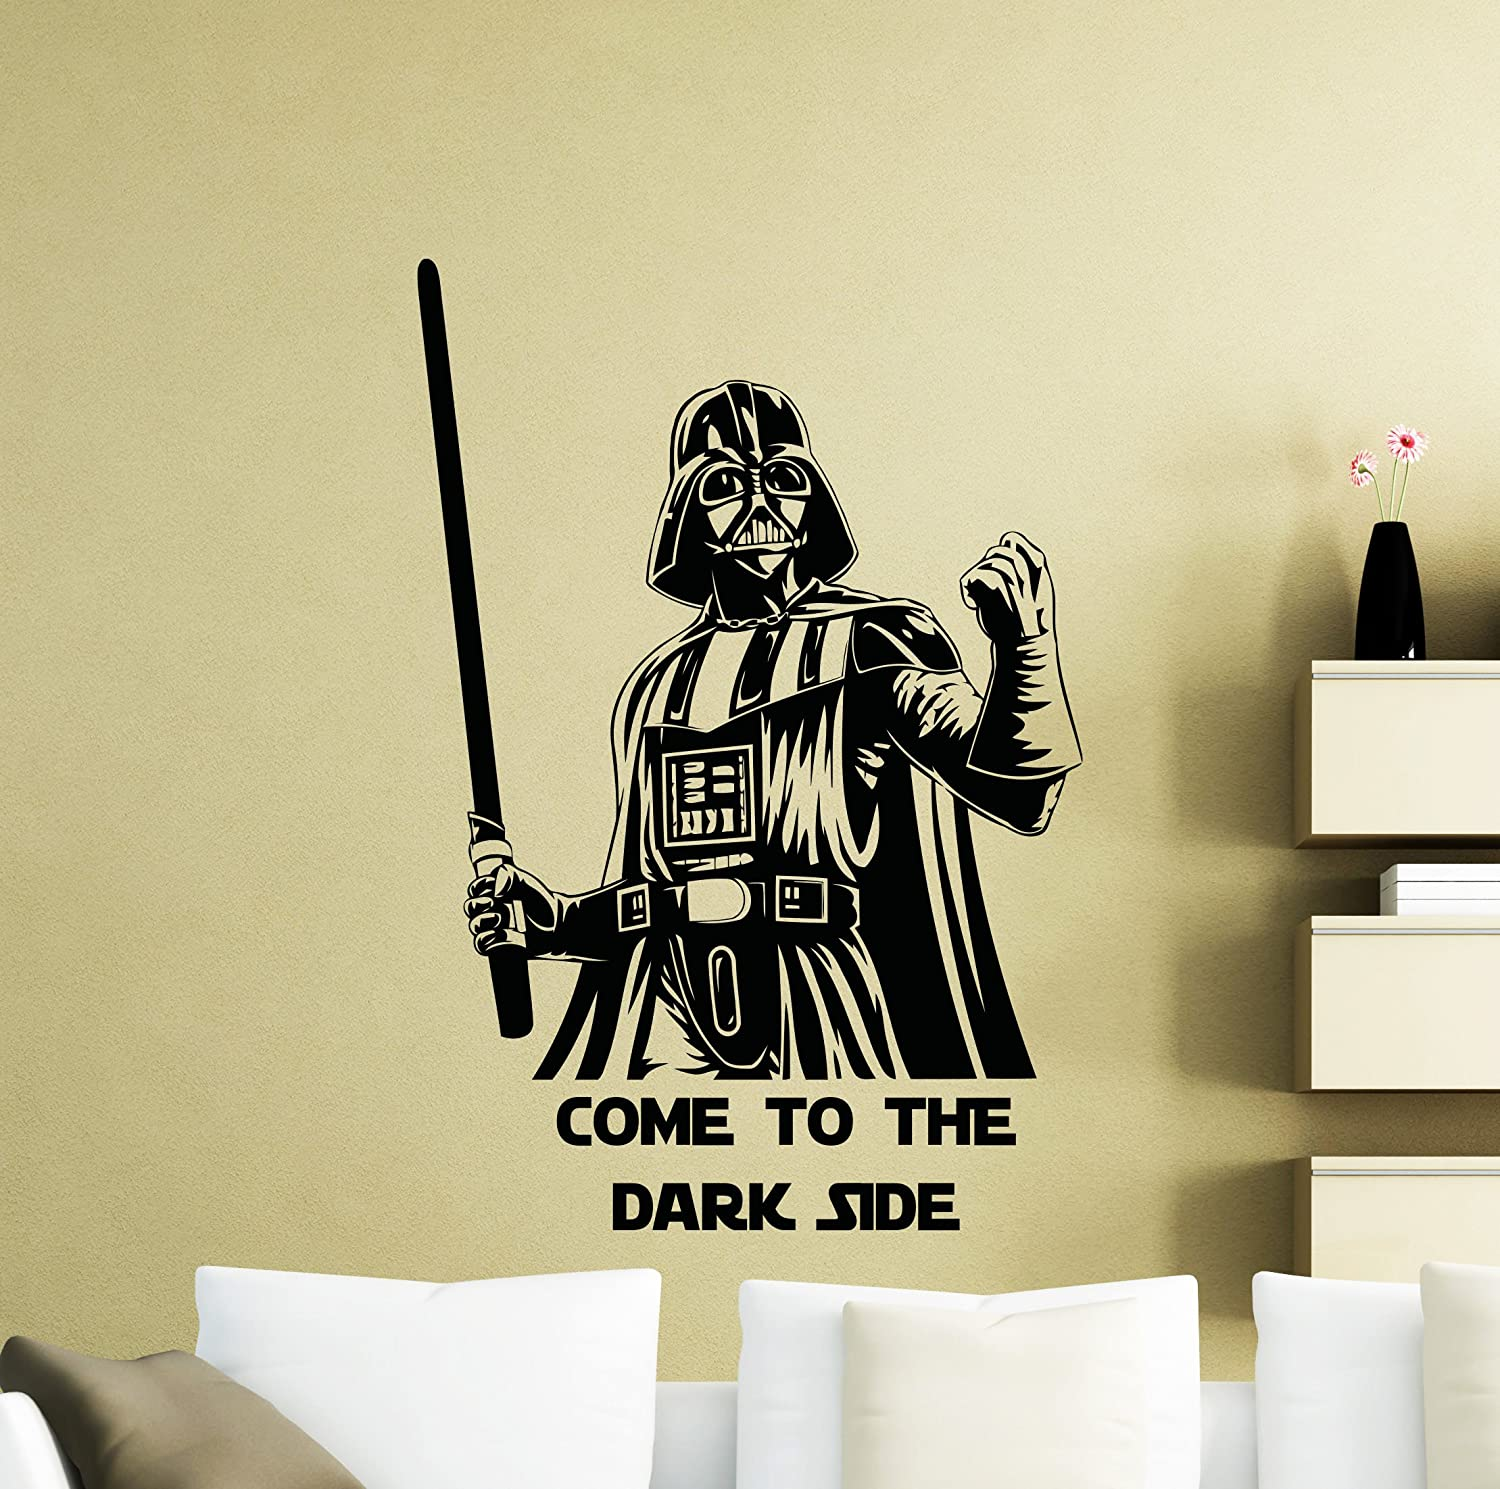 Star Wars Wall Decals Darth Vader Come to The Dark Side One Quote Vinyl Sticker Home Teen Kids Room Nursery Art Decor Lettering Vinyl Mural (22sw)